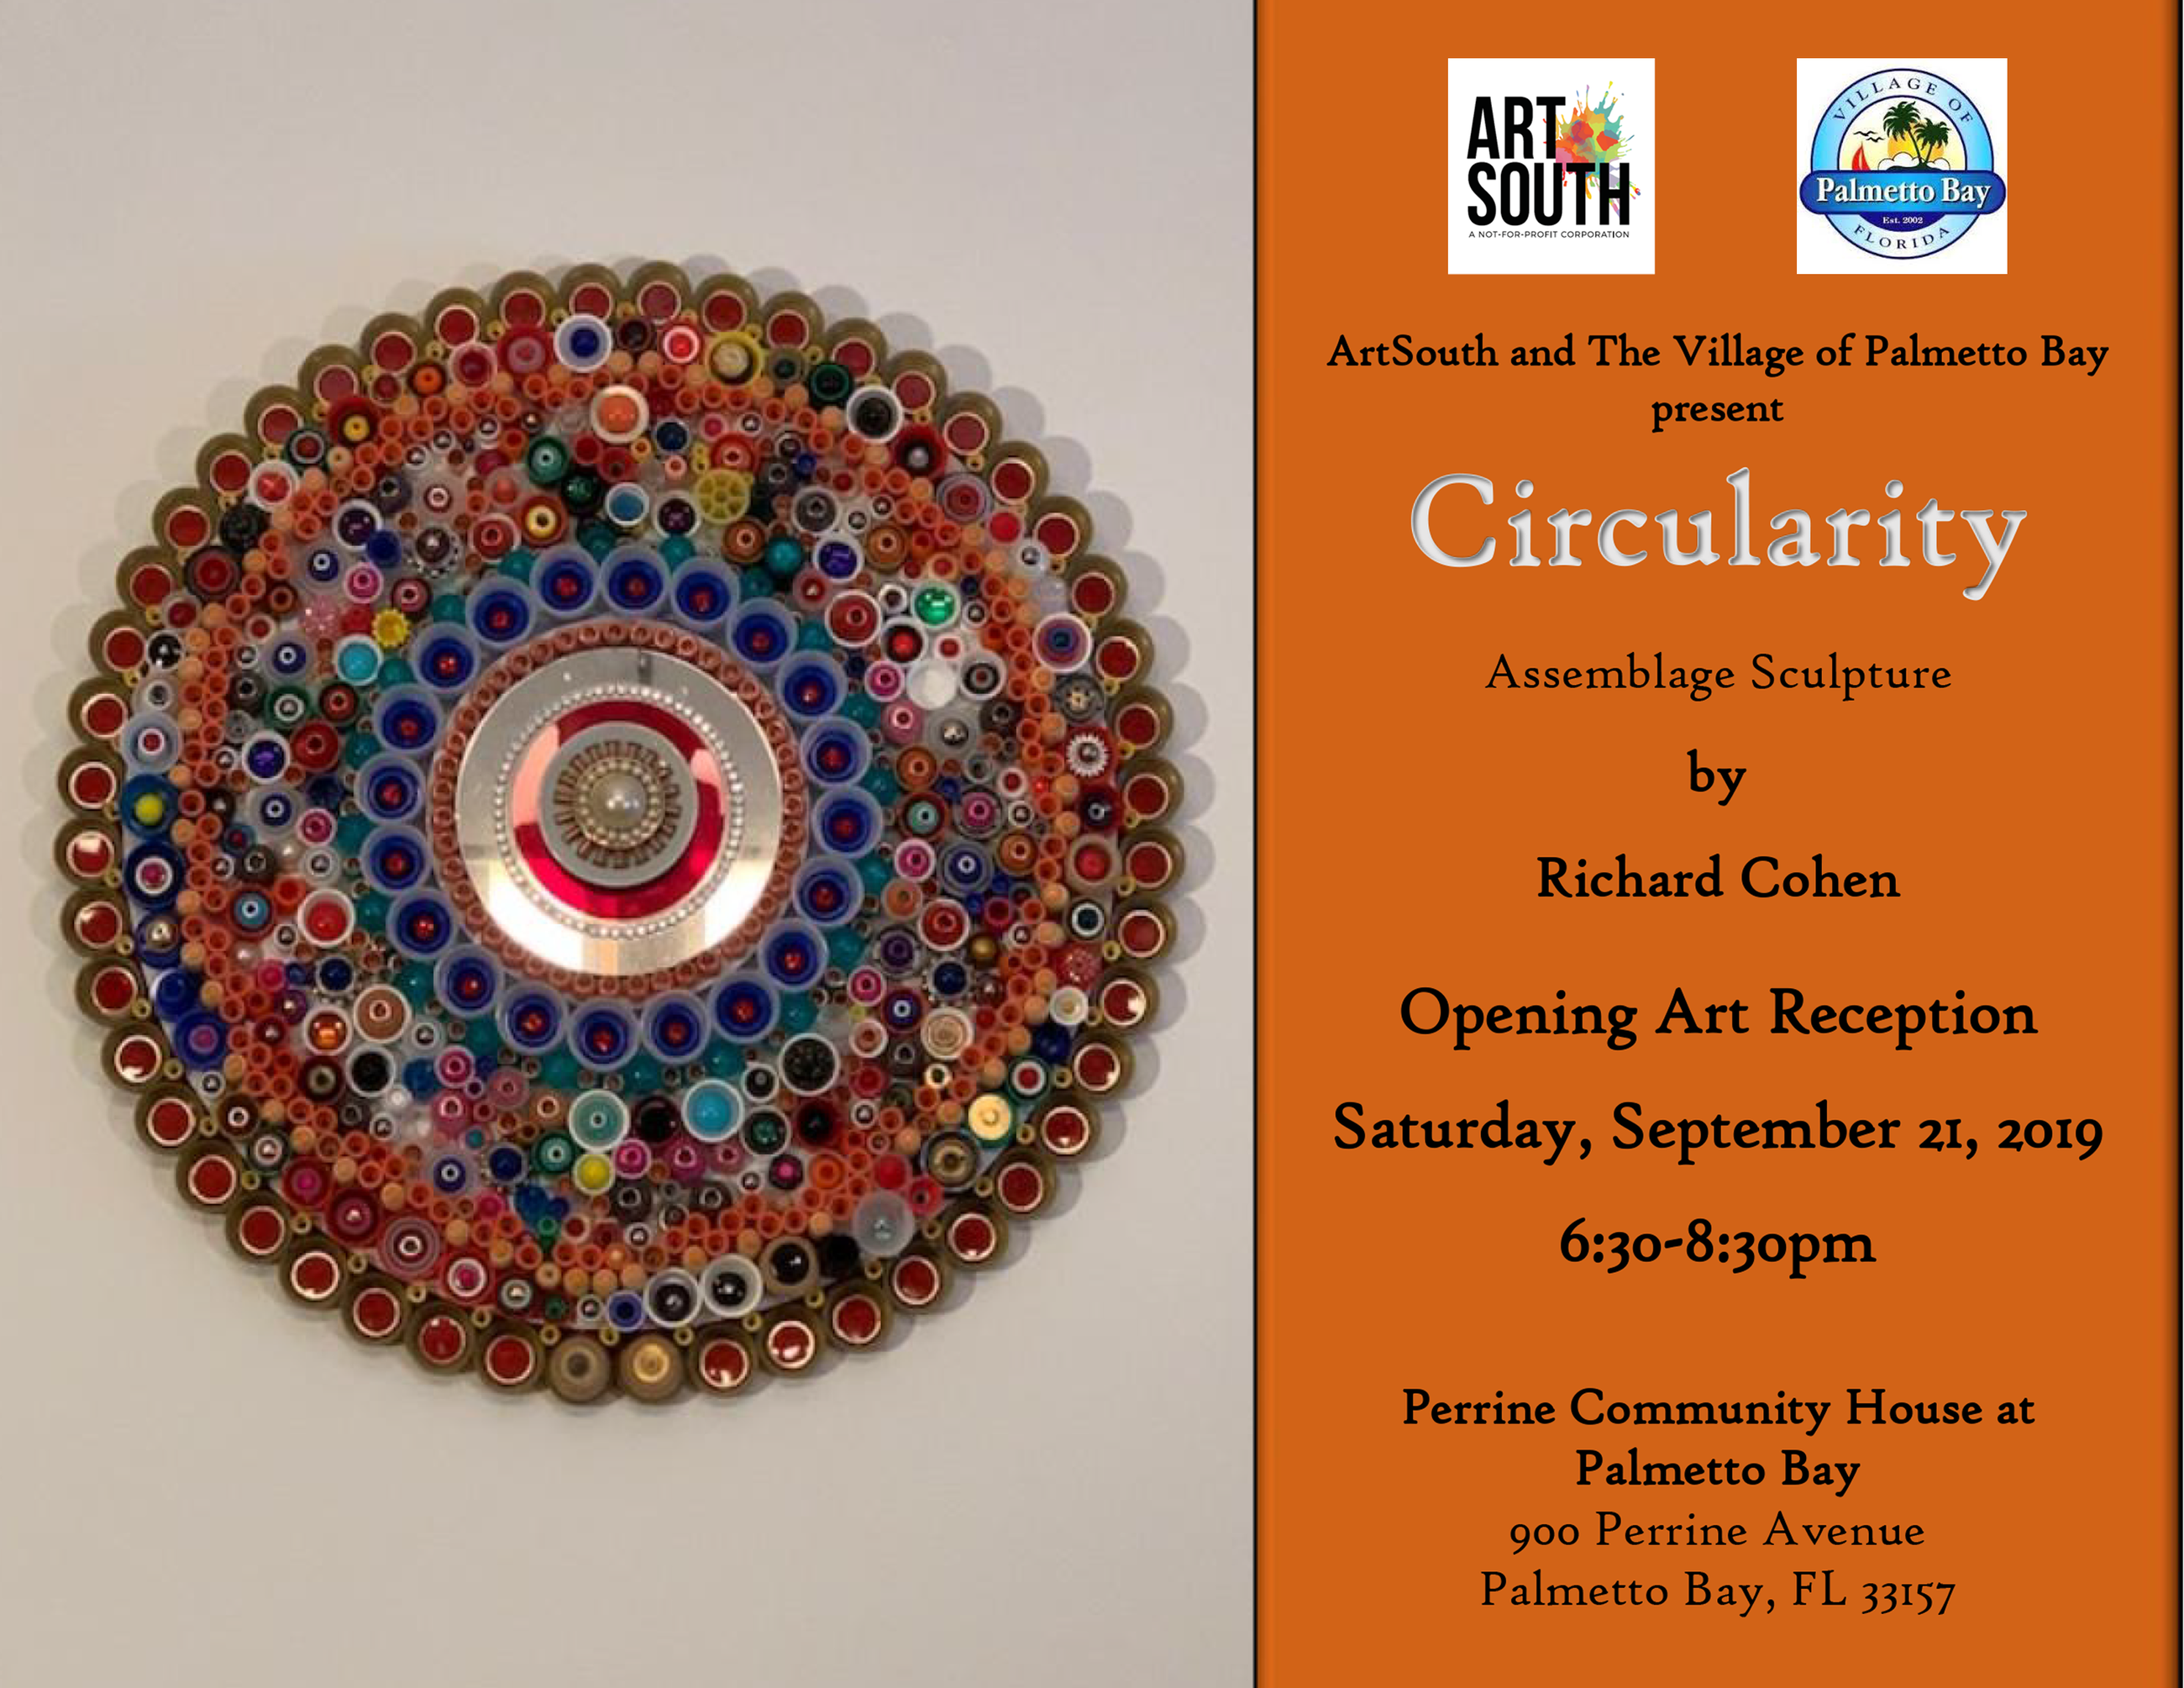 Palmetto Bay Art Exhibit, Richard Cohen's Circularity, Saturday, September 21 from 6:30pm-8:30pm